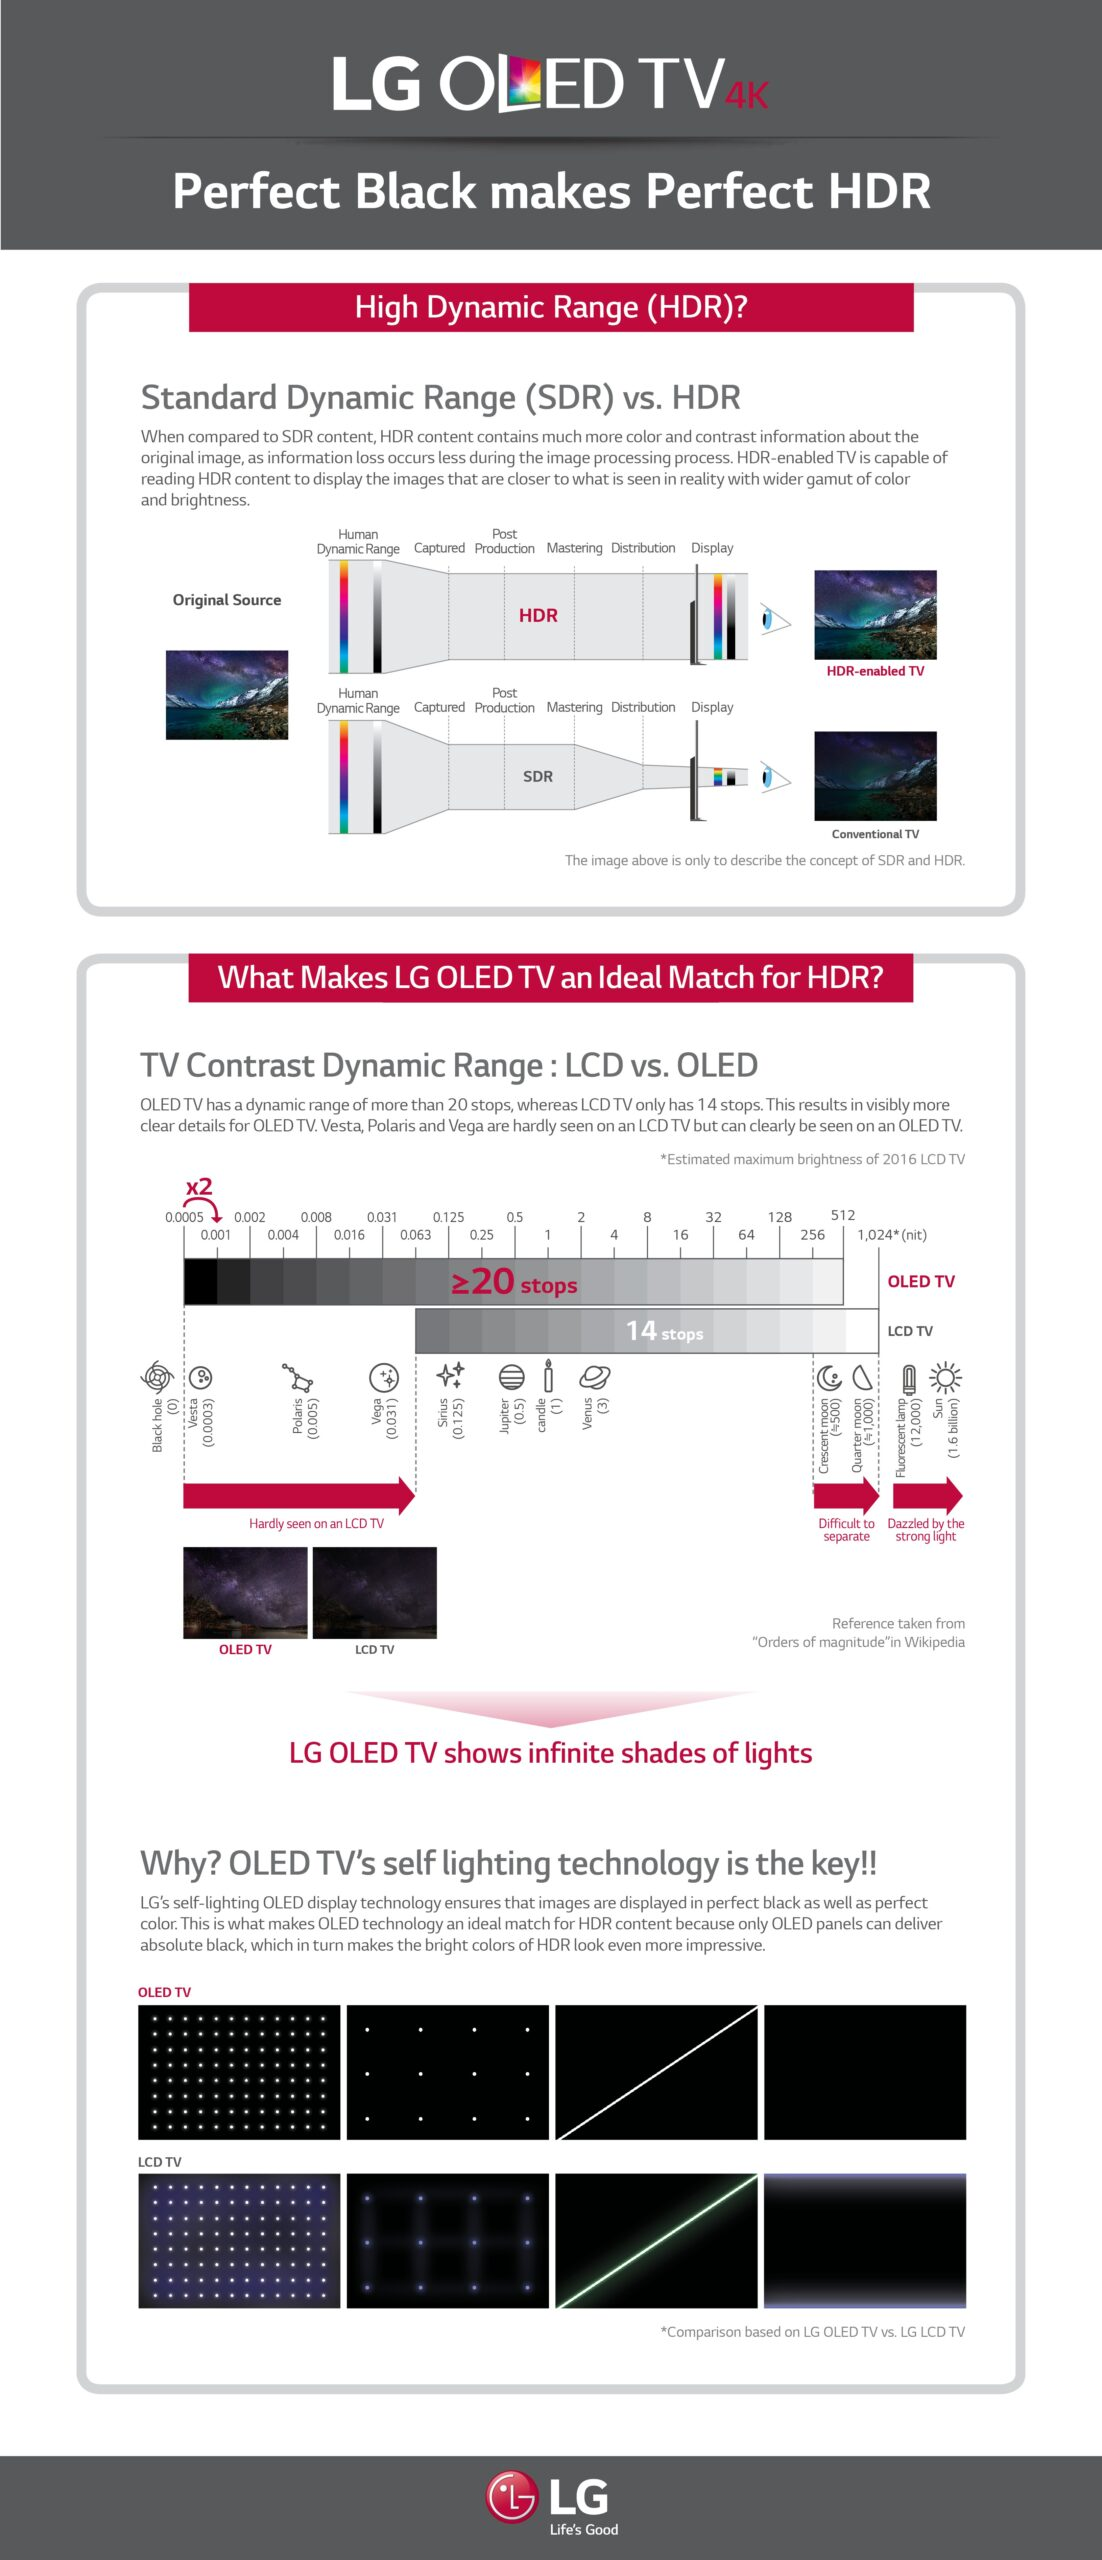 "This infographic titled, ""LG OLED TV 4K: Perfect Black Makes Perfect HDR,"" compares High Dynamic Range (HDR) technology to Standard Dynamic Range (SDR), and explains why LG OLED TVs are perfect for HDR."